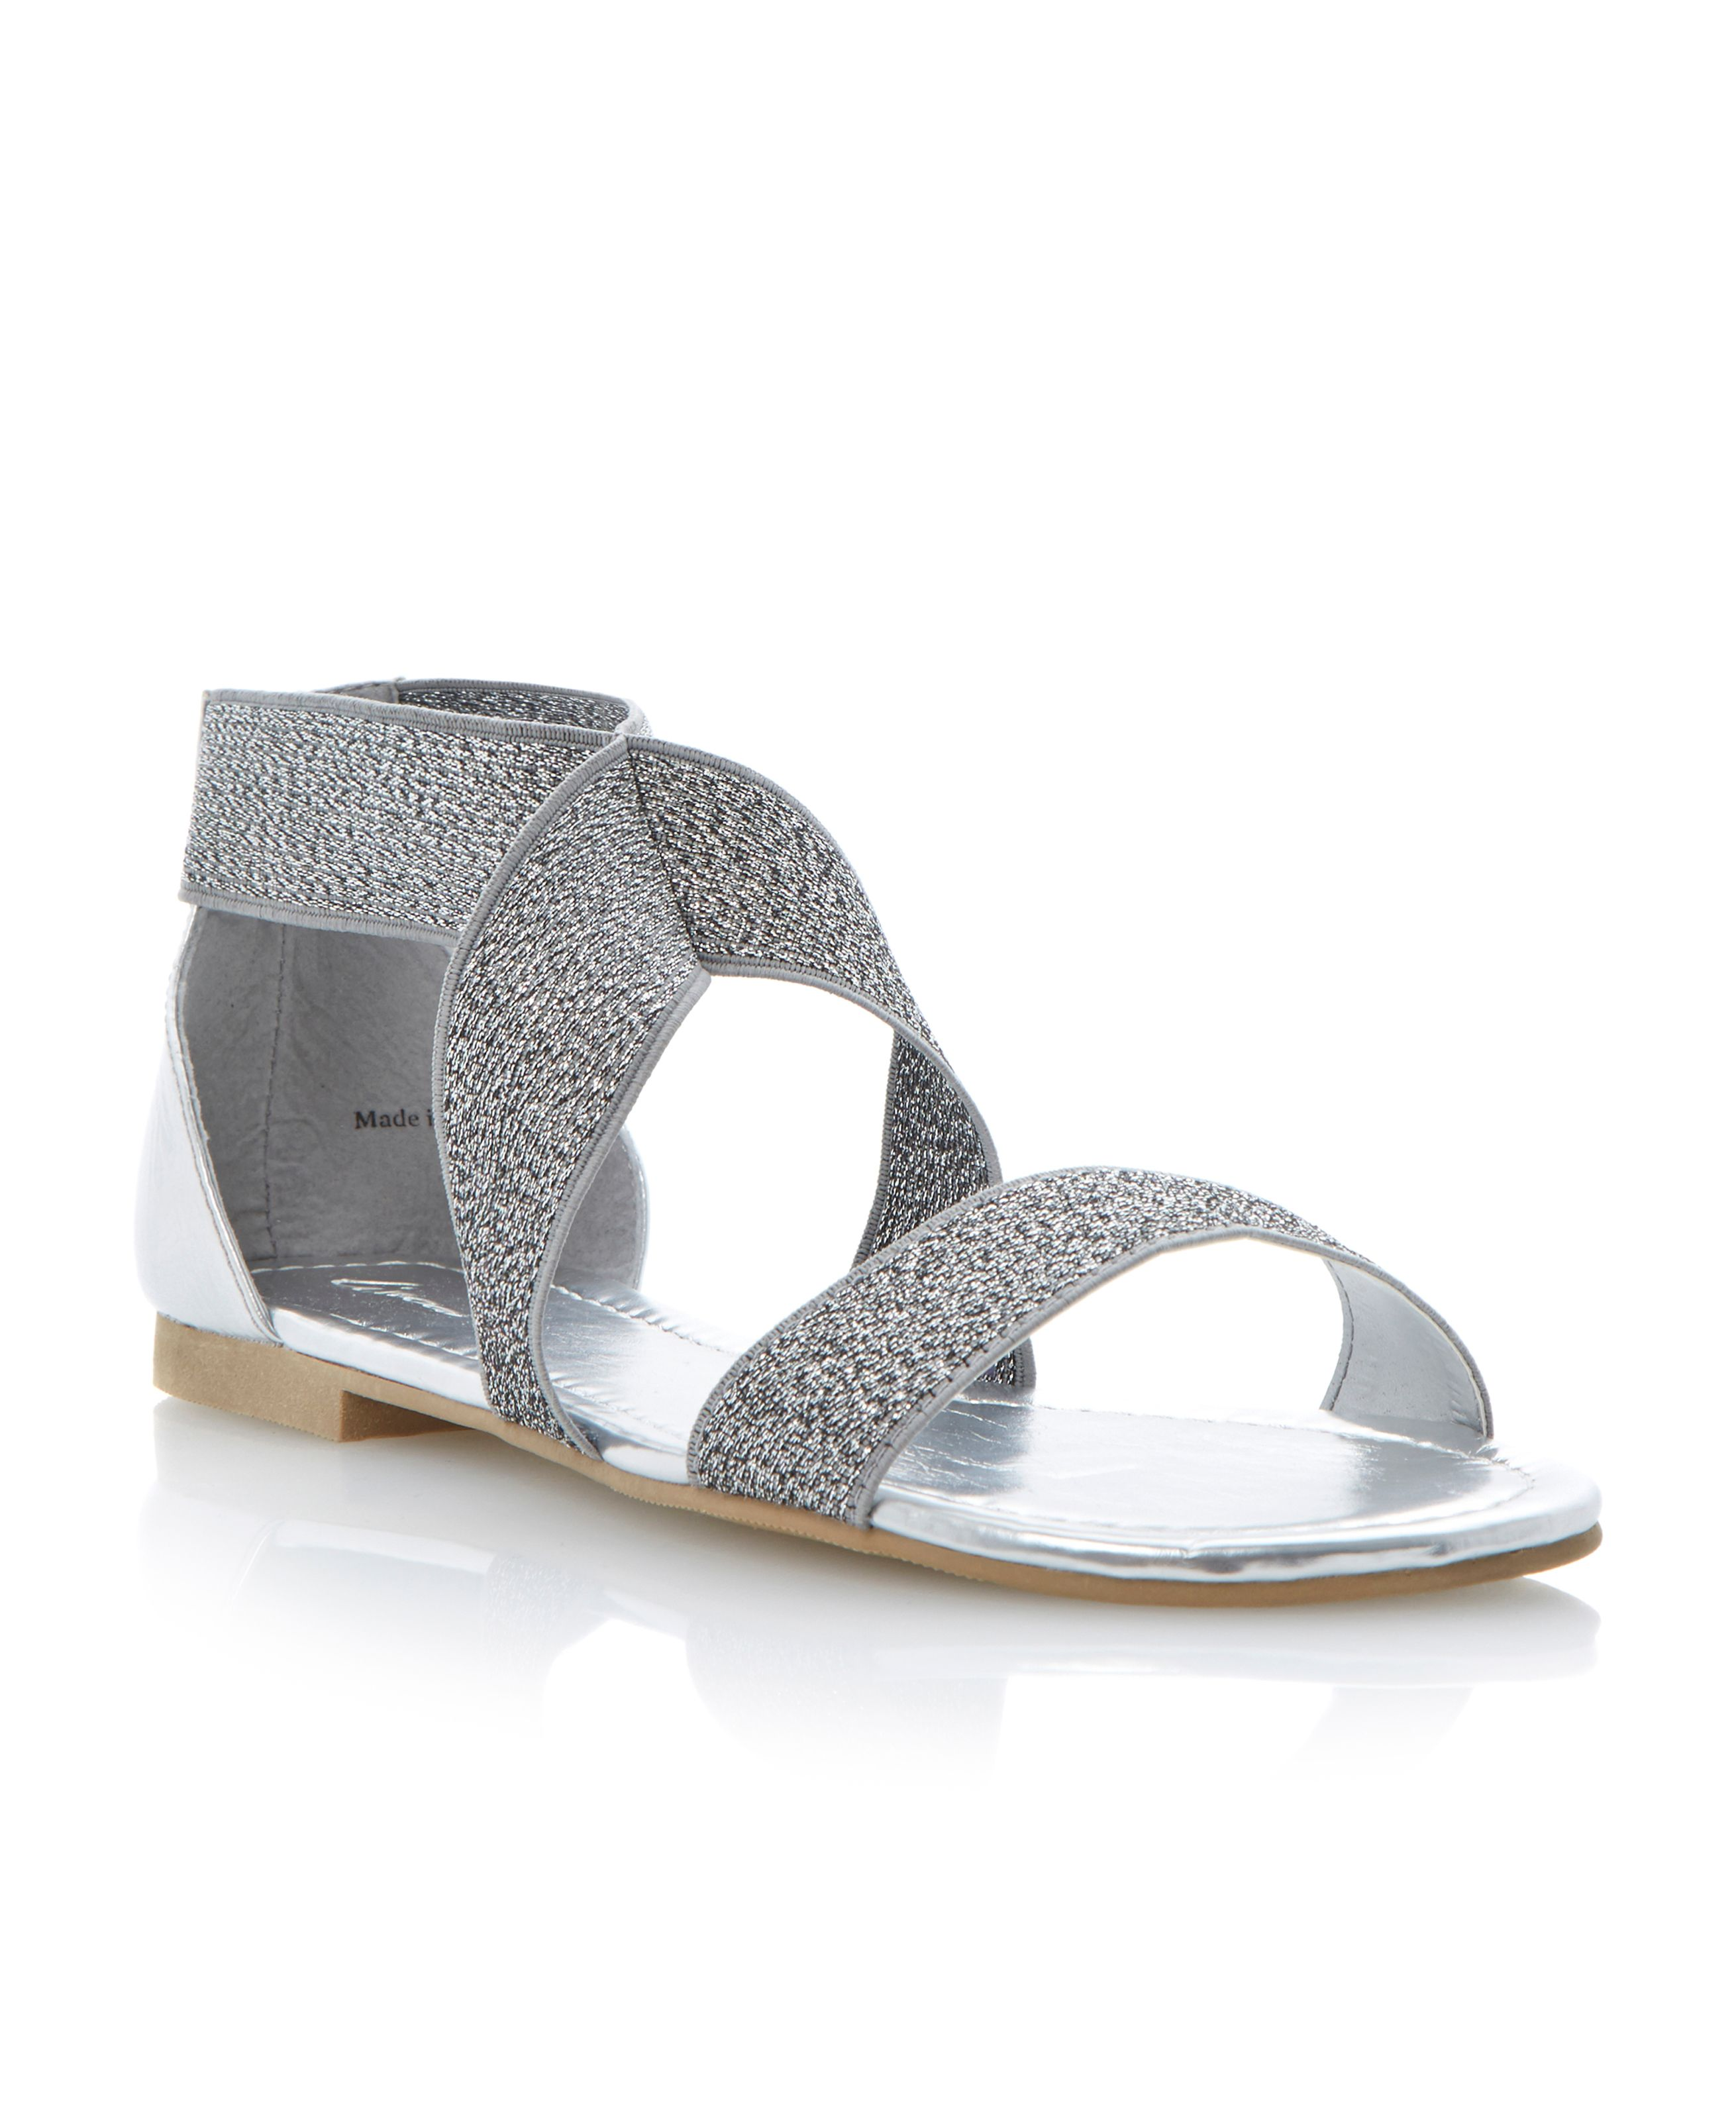 Jalapeno elasticated strap flat sandals